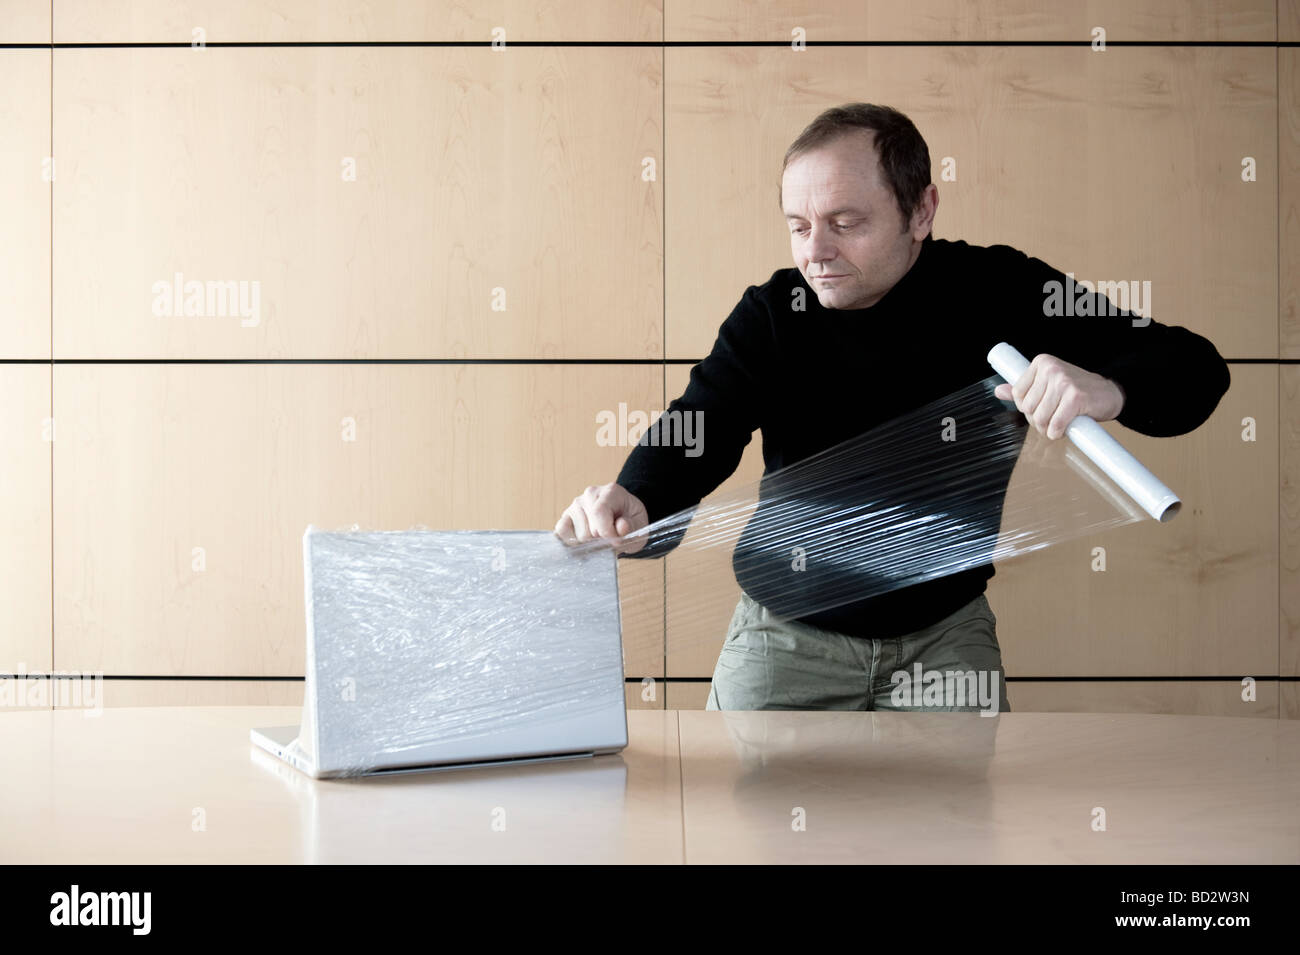 Man wrapping computer with plastic film - Stock Image